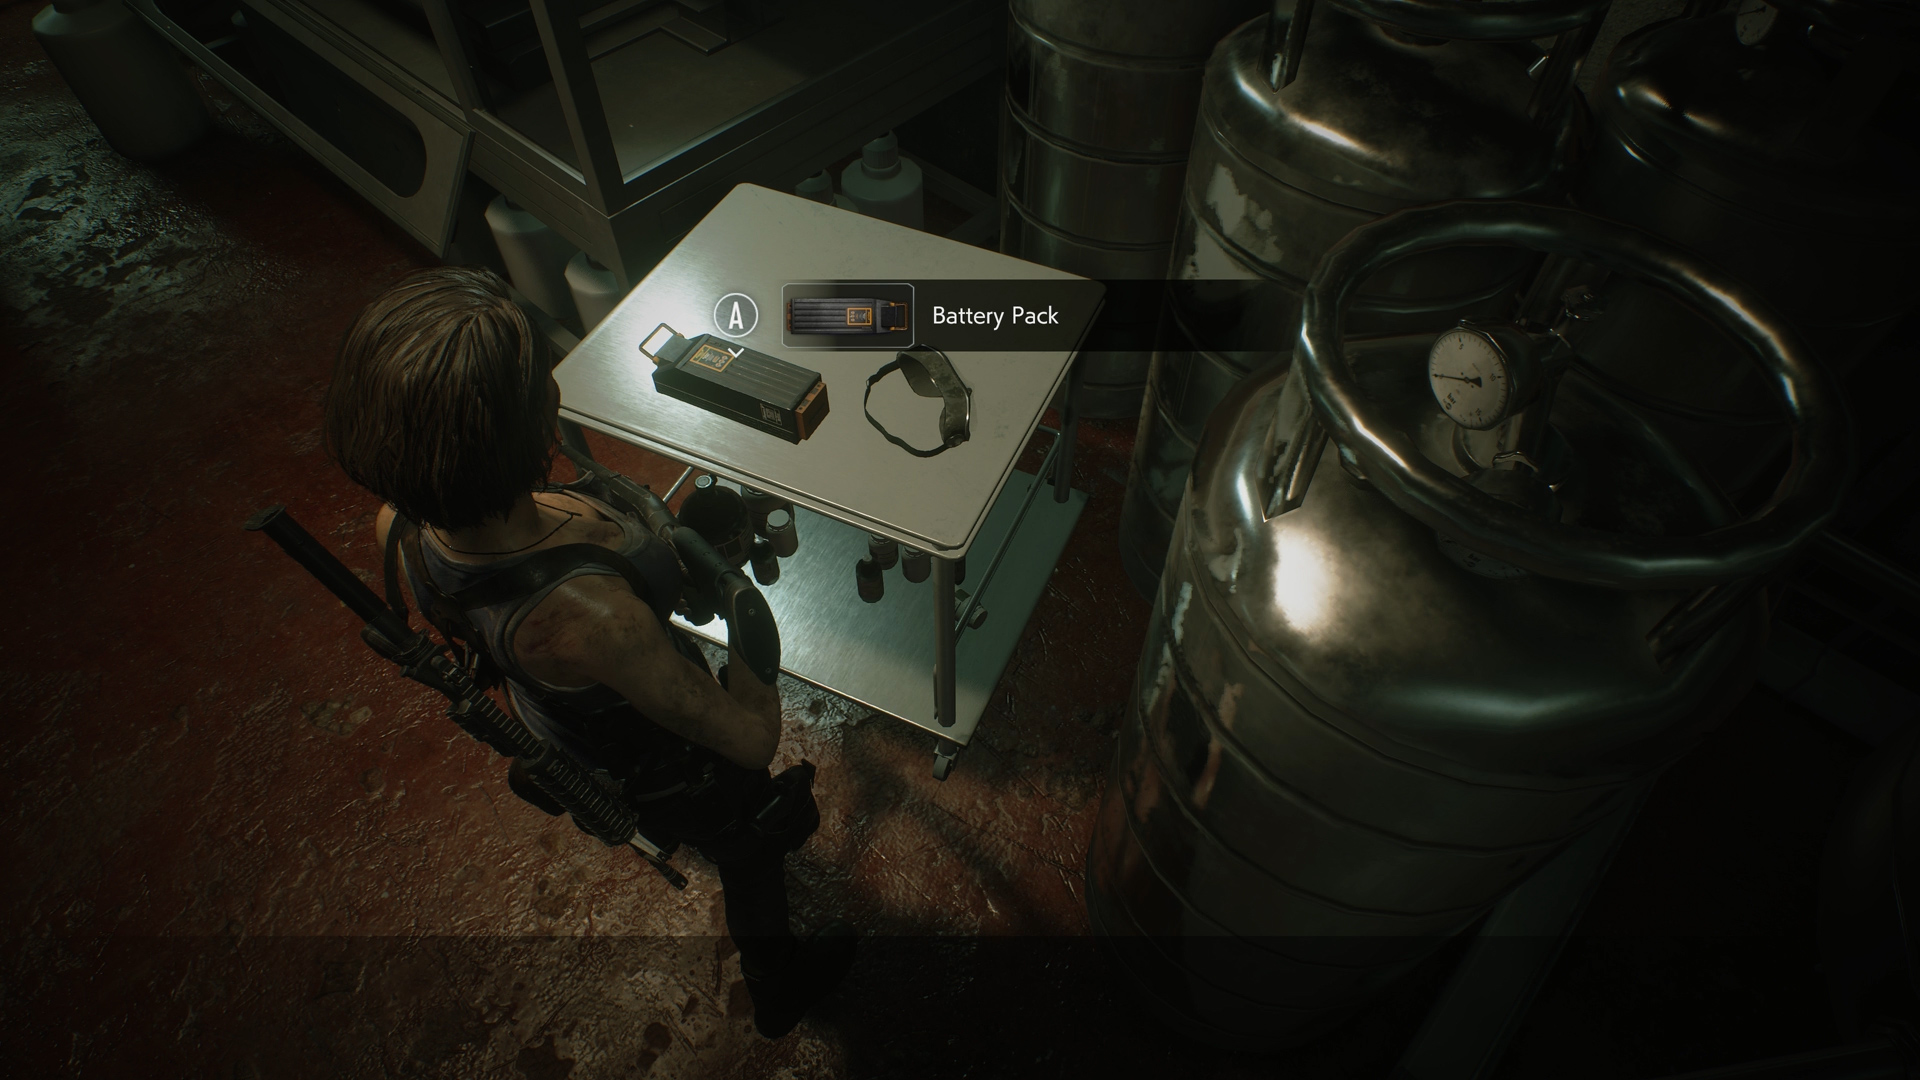 resident evil 3 battery pack location